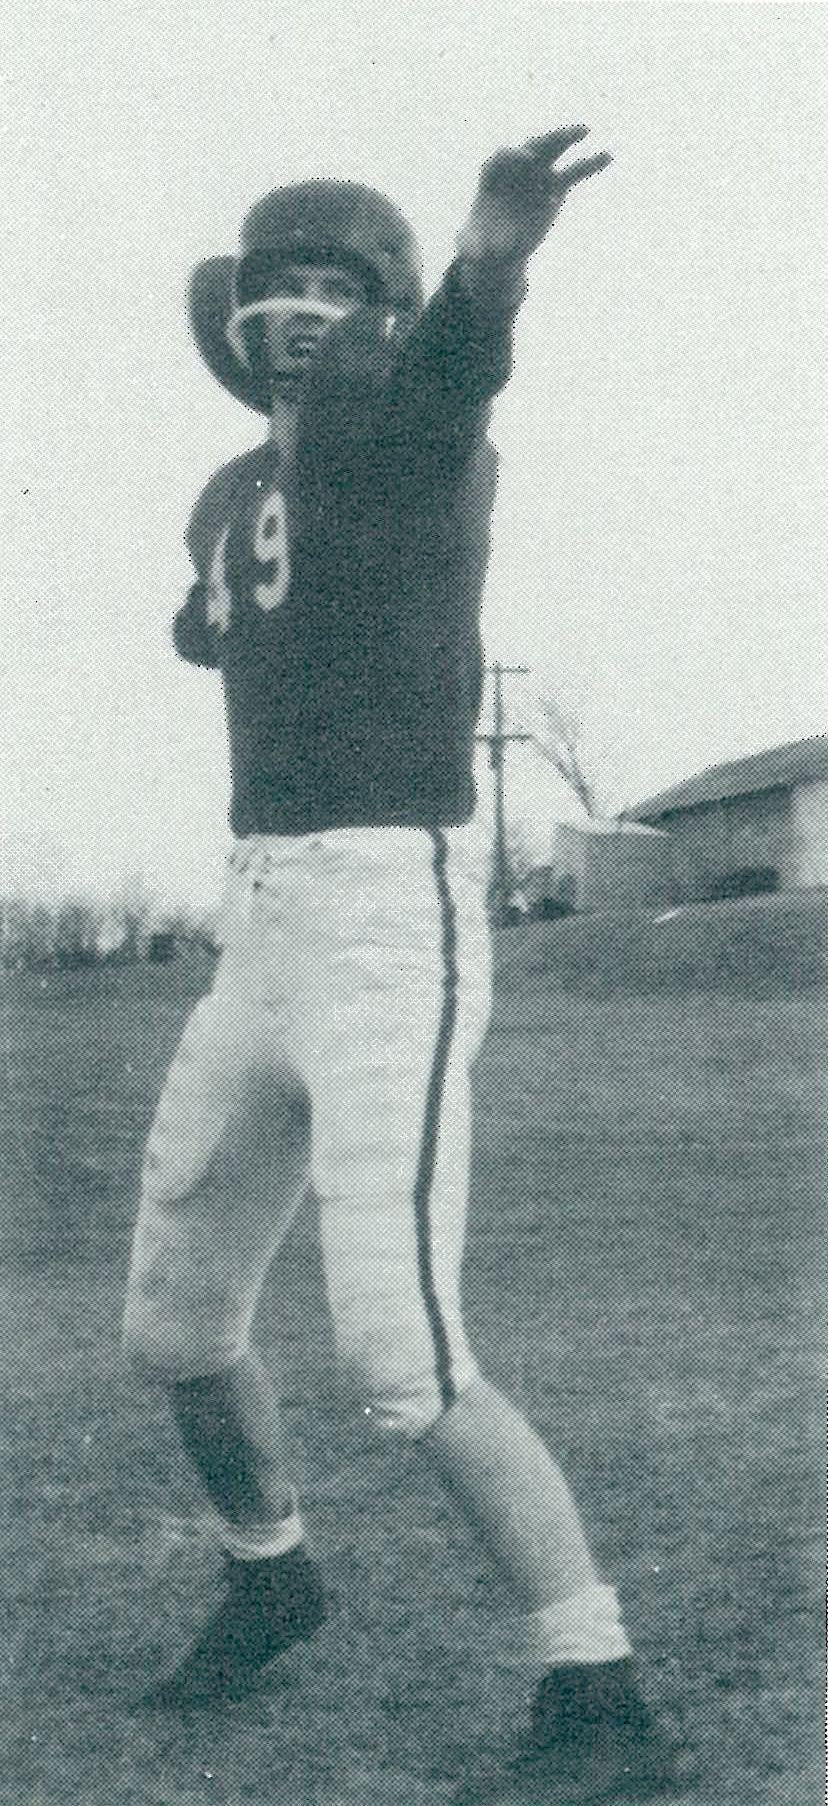 G.T. Gunhus poses in his football gear for a yearbook photo in 1957.